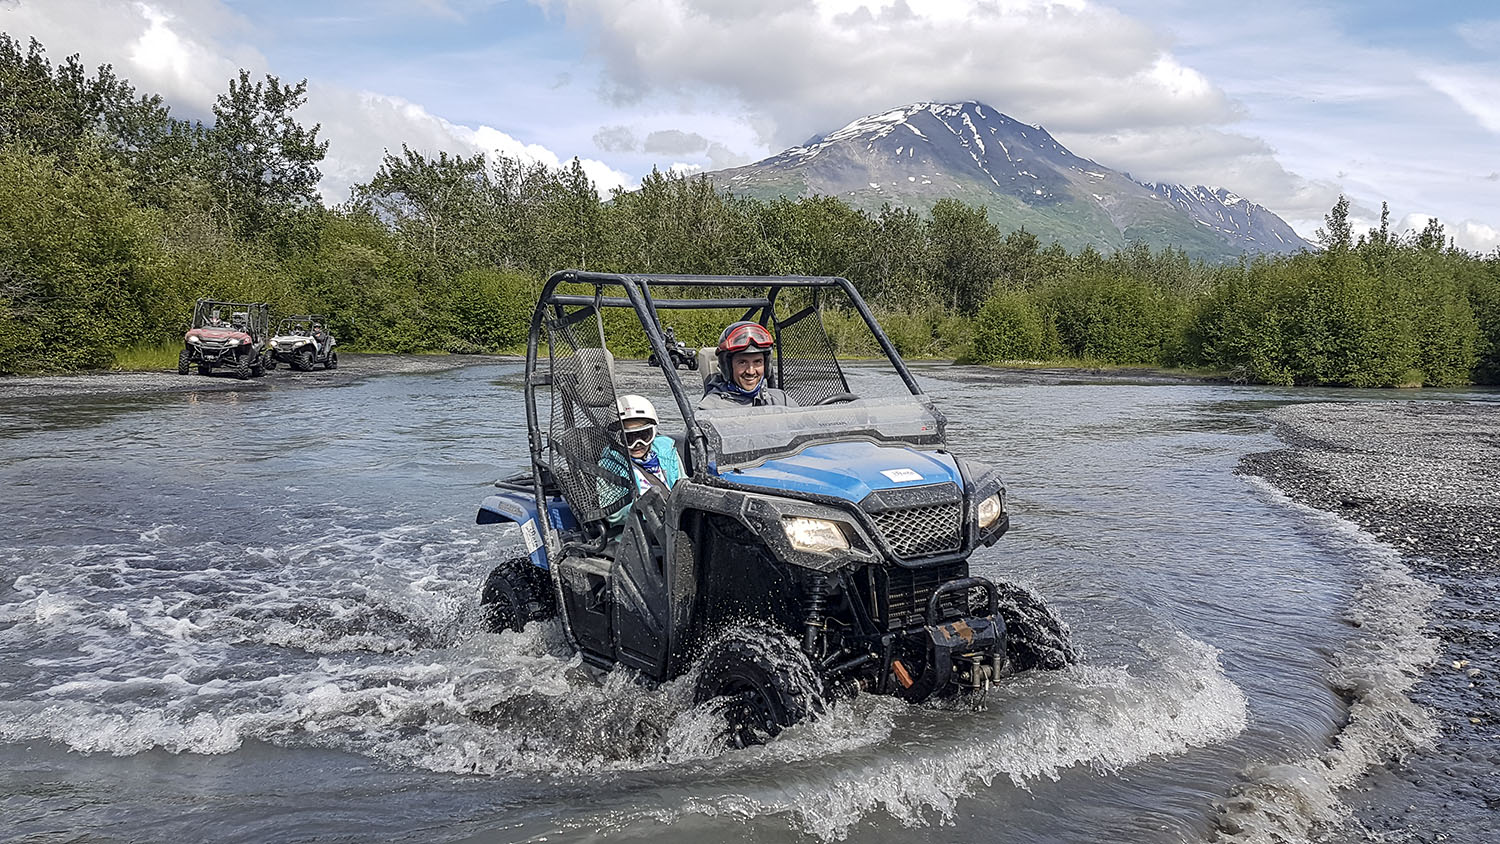 Dad and daughter make Knik River Valley water crossing